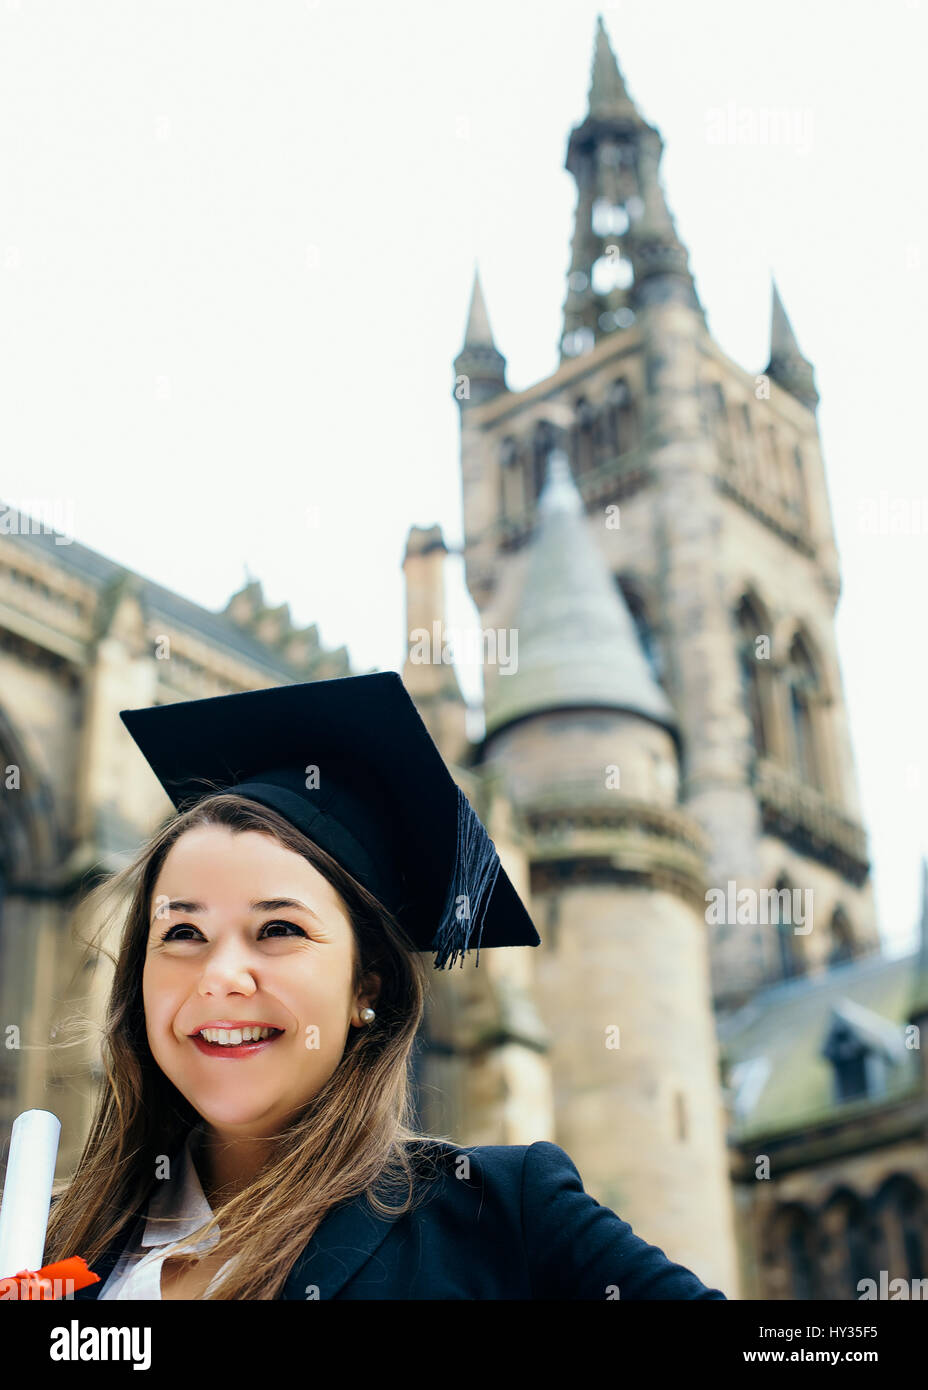 Female Student in Mortar Hat Graduating from Glasgow University - Stock Image